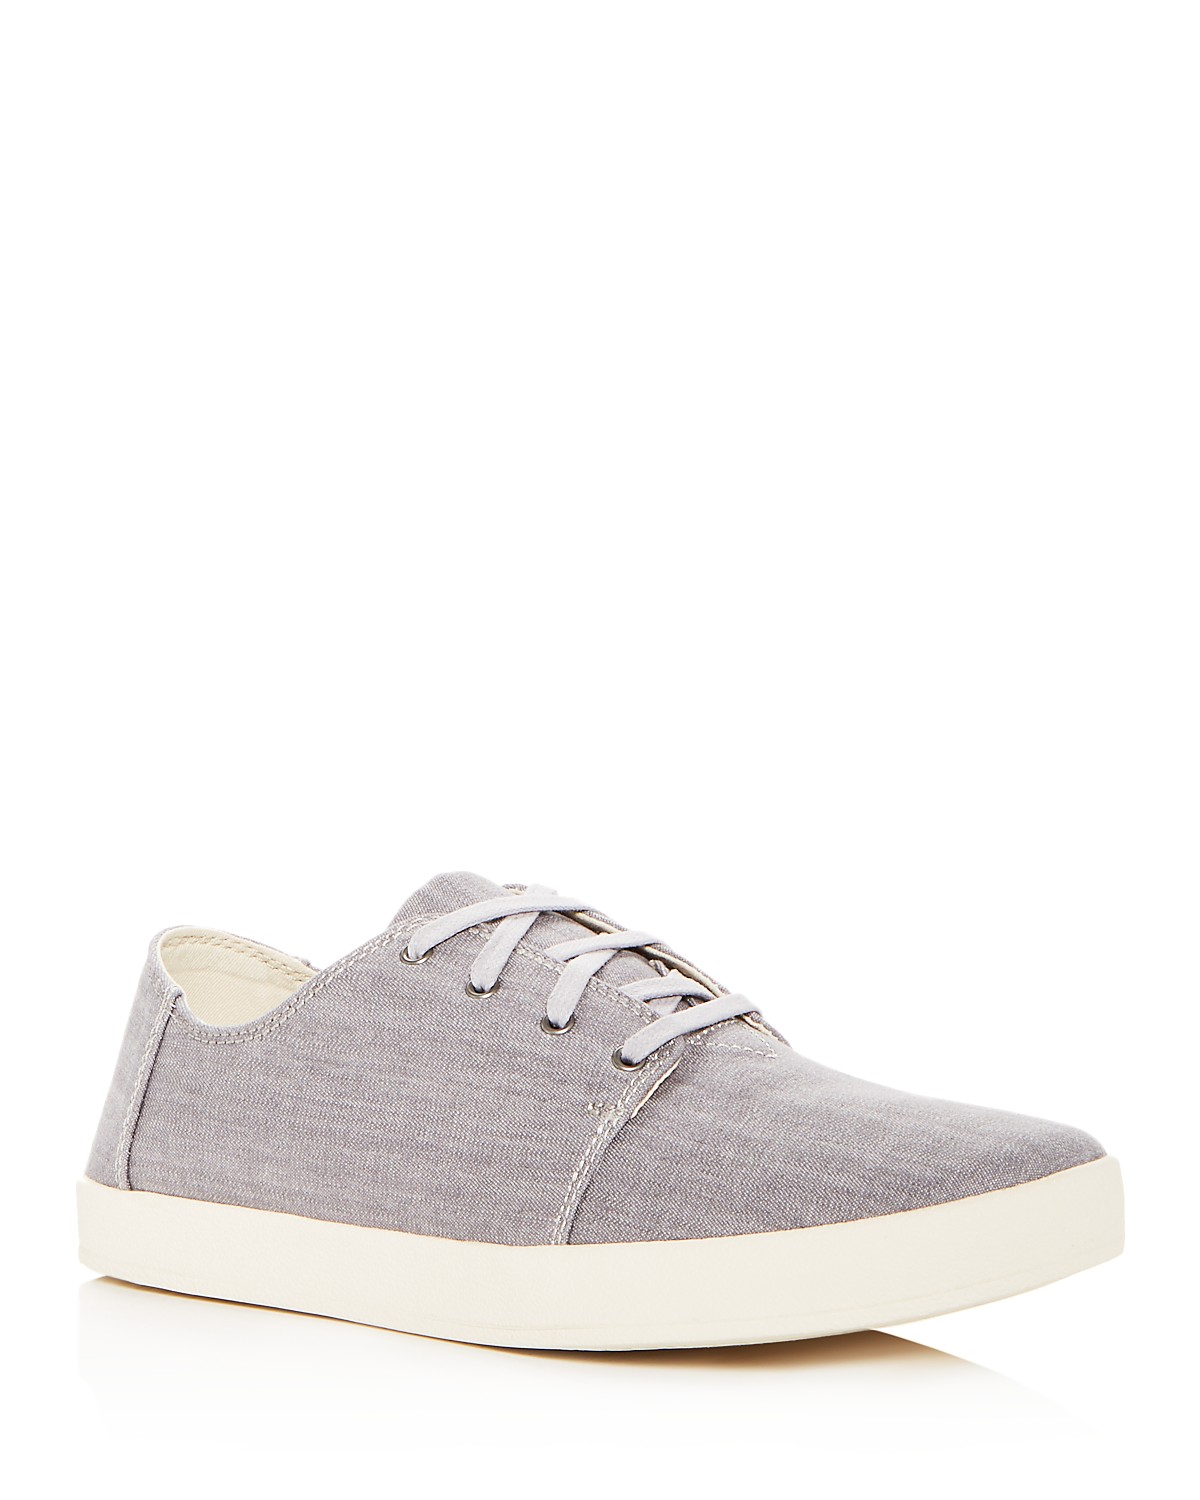 TOMS Men's Payton Denim Lace Up Sneakers zDgrsq6xt